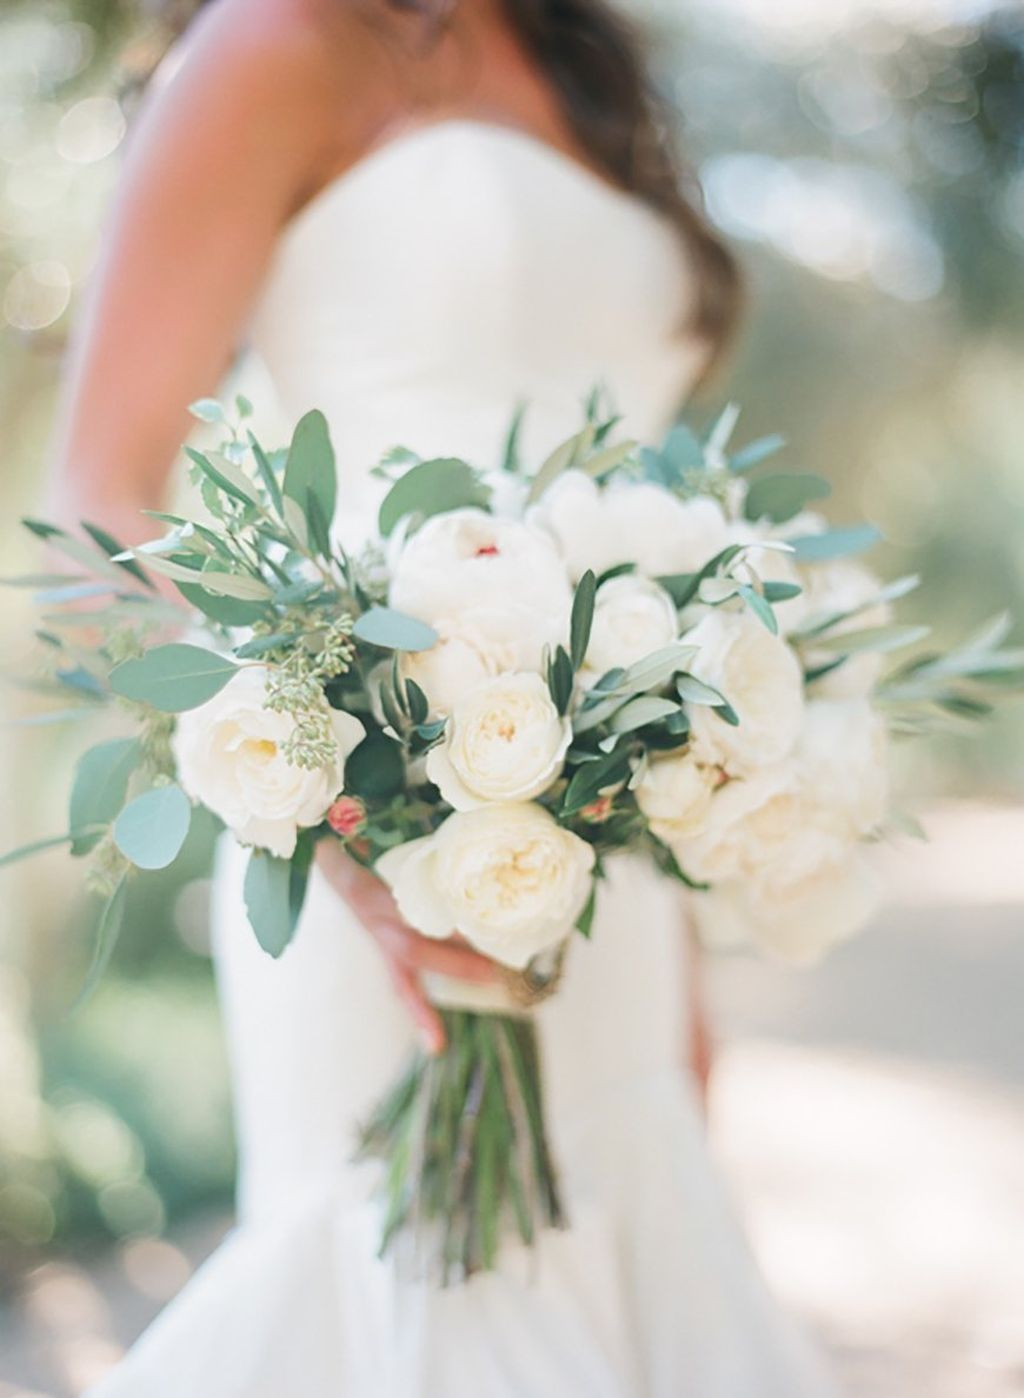 50 Pretty White and Green Wedding Themed Ideas for Your Special Day ...